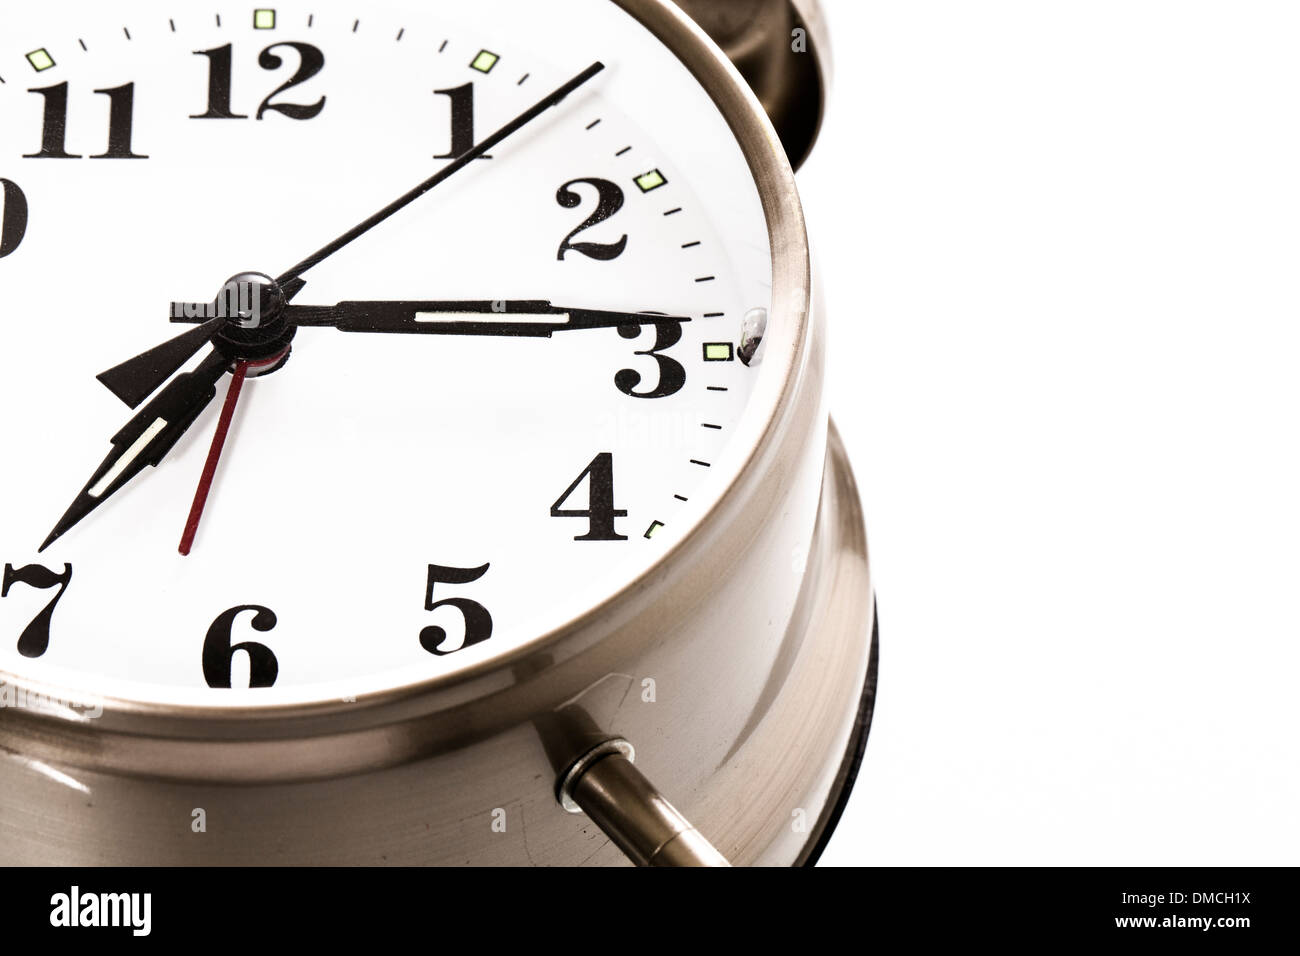 Analog alarm clock - Stock Image